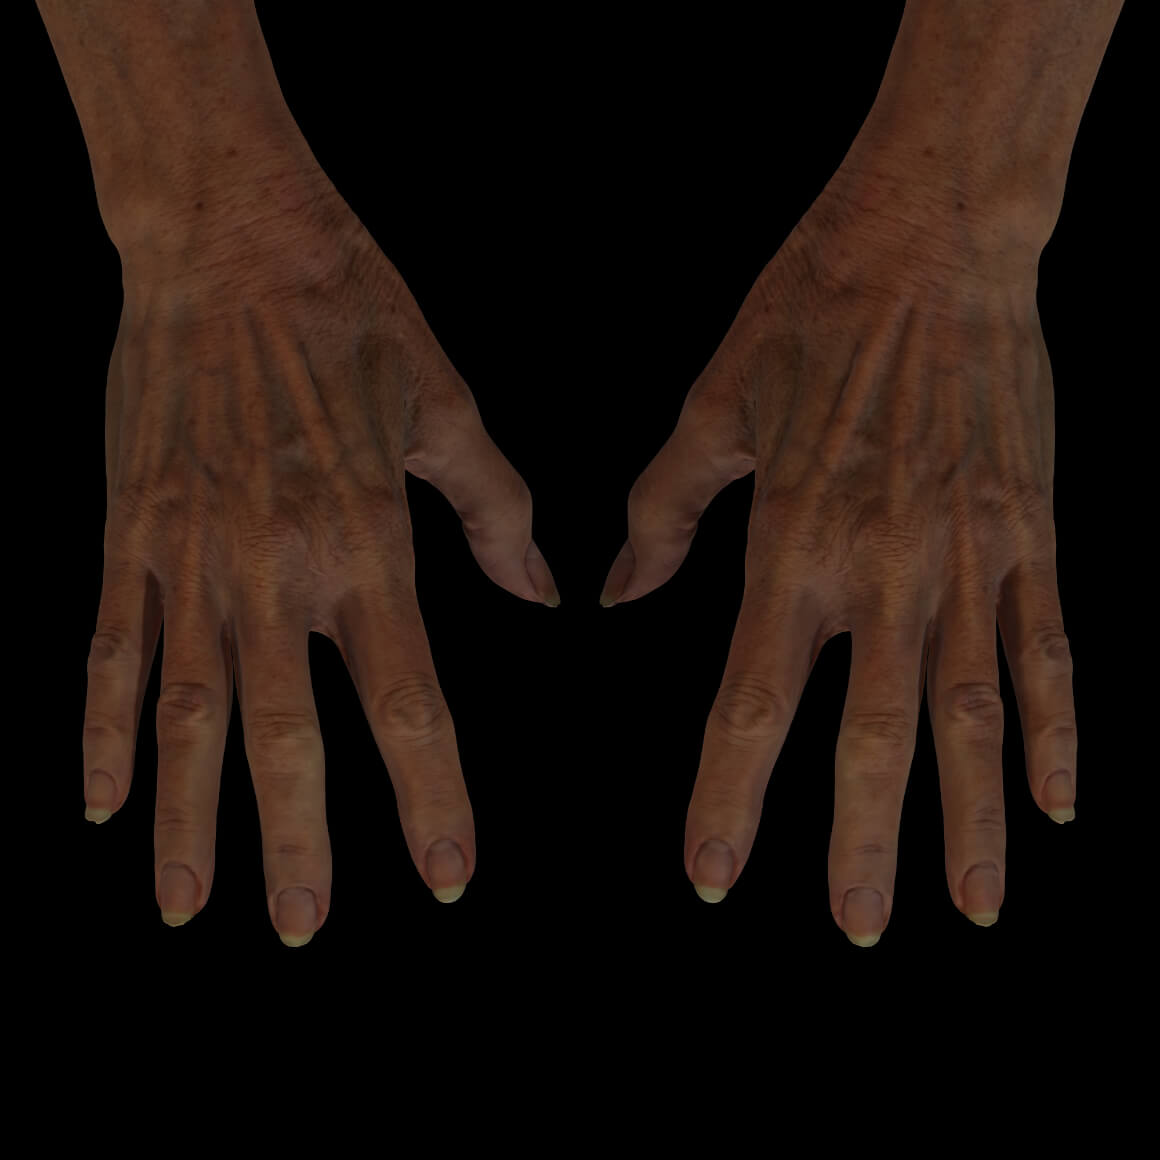 A Clinique Chloé female patient's hands showing pigmented lesions, wrinkles and prominent tendons